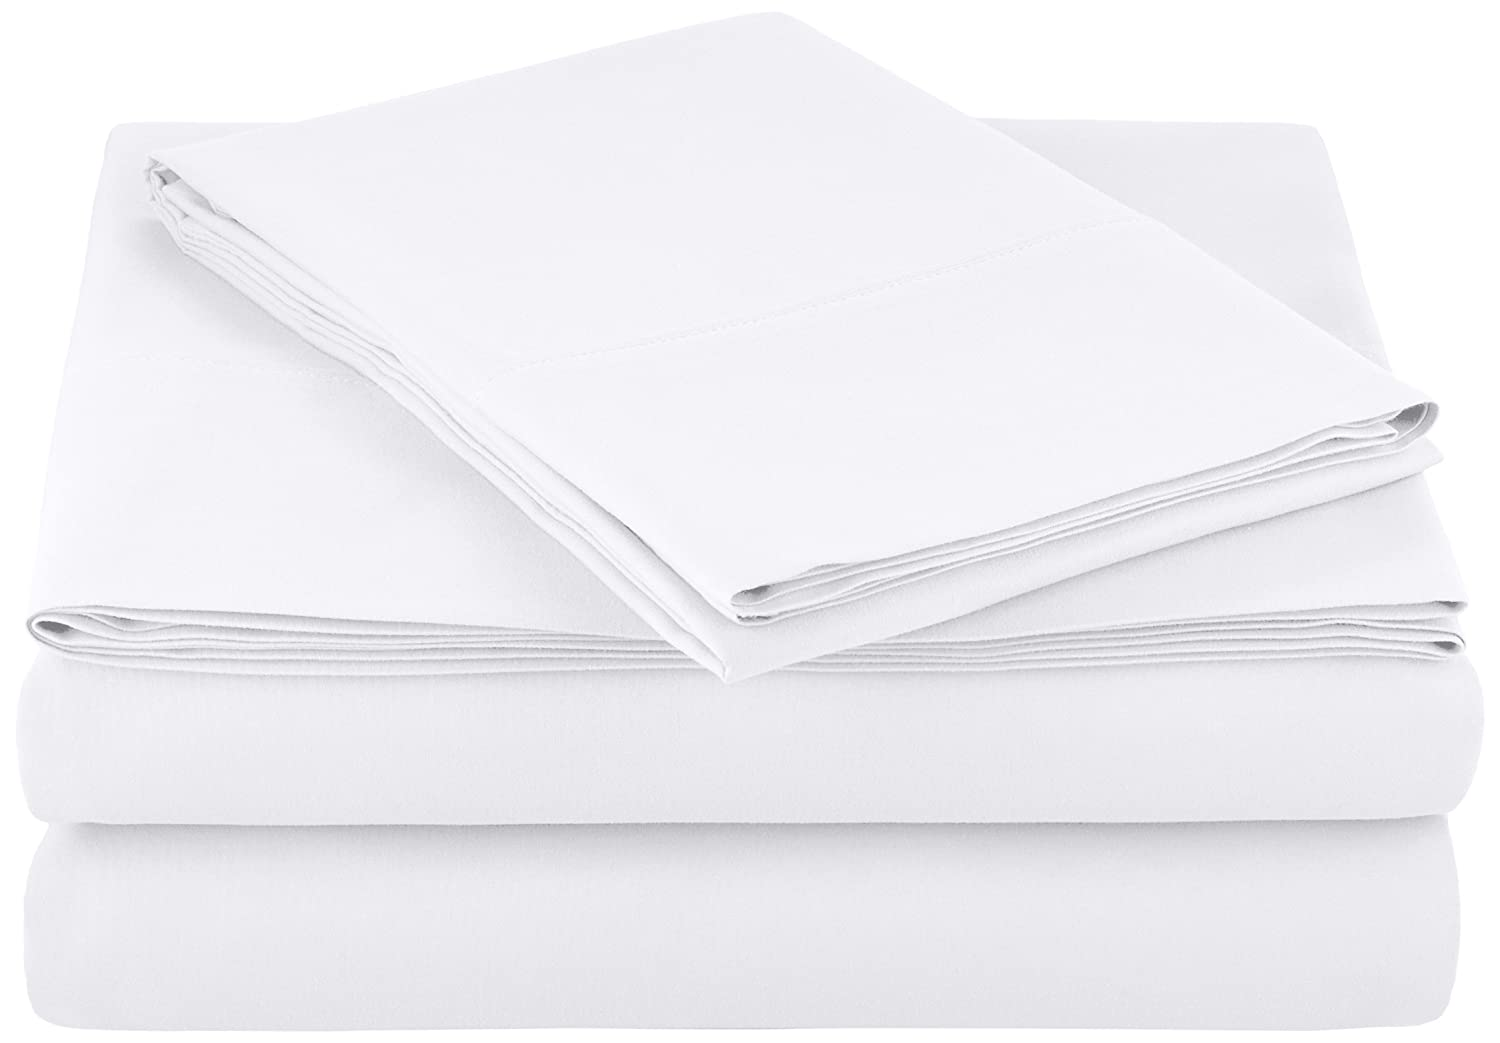 AmazonBasics Microfiber Sheet Set - Twin, Bright White